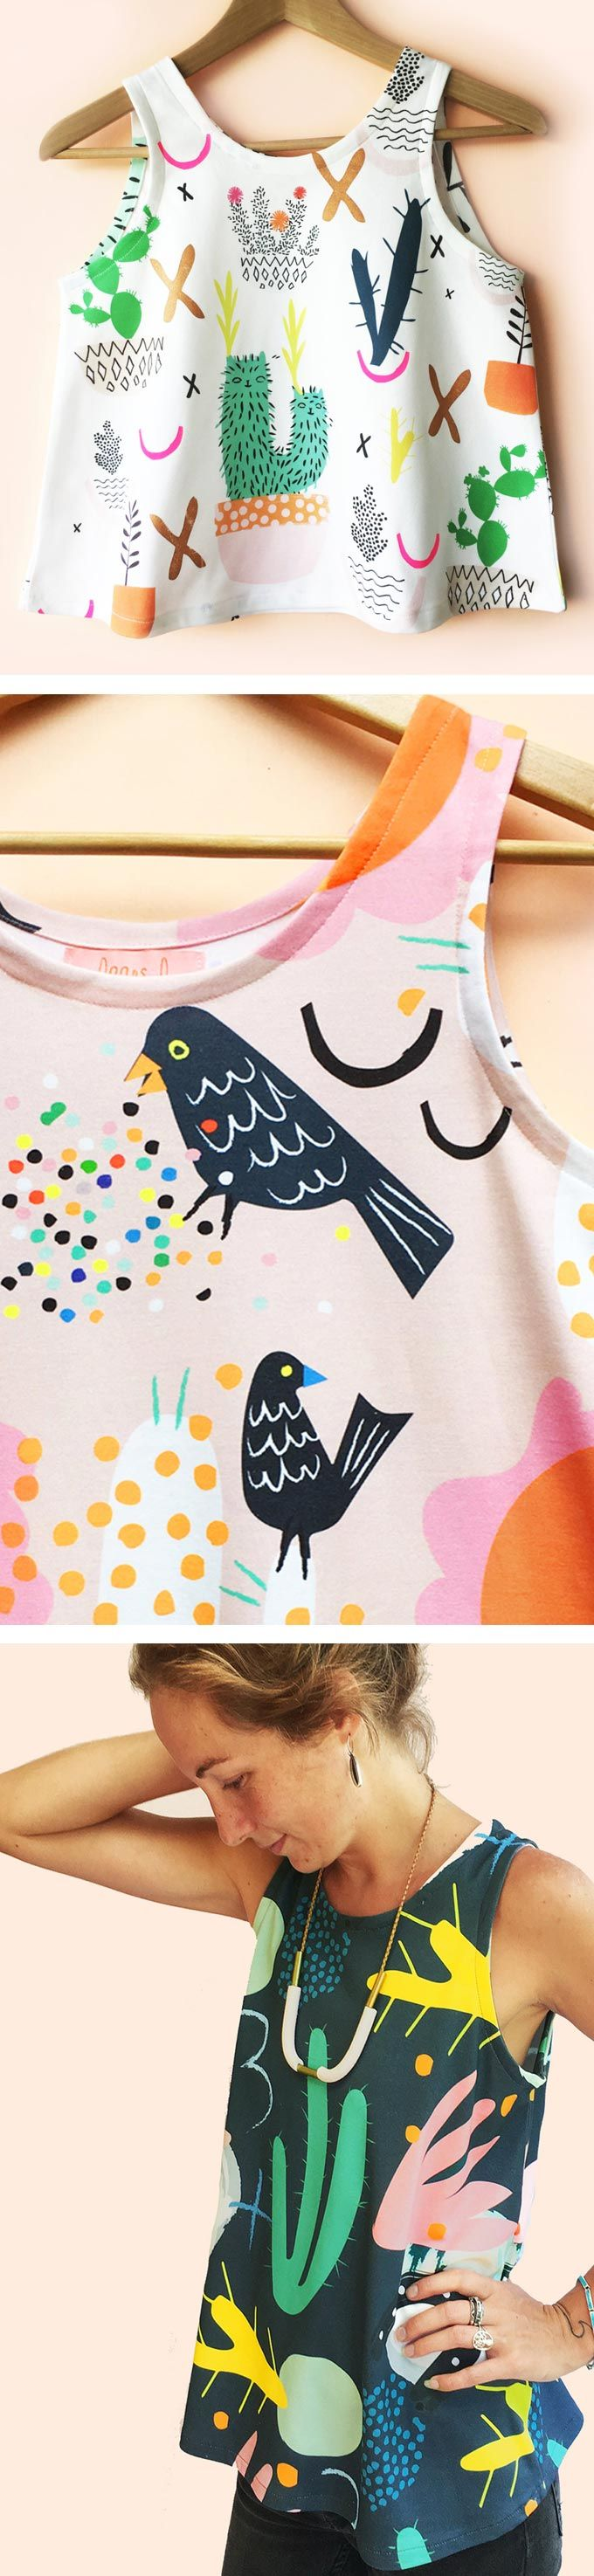 Illustrated clothing by Doops Design